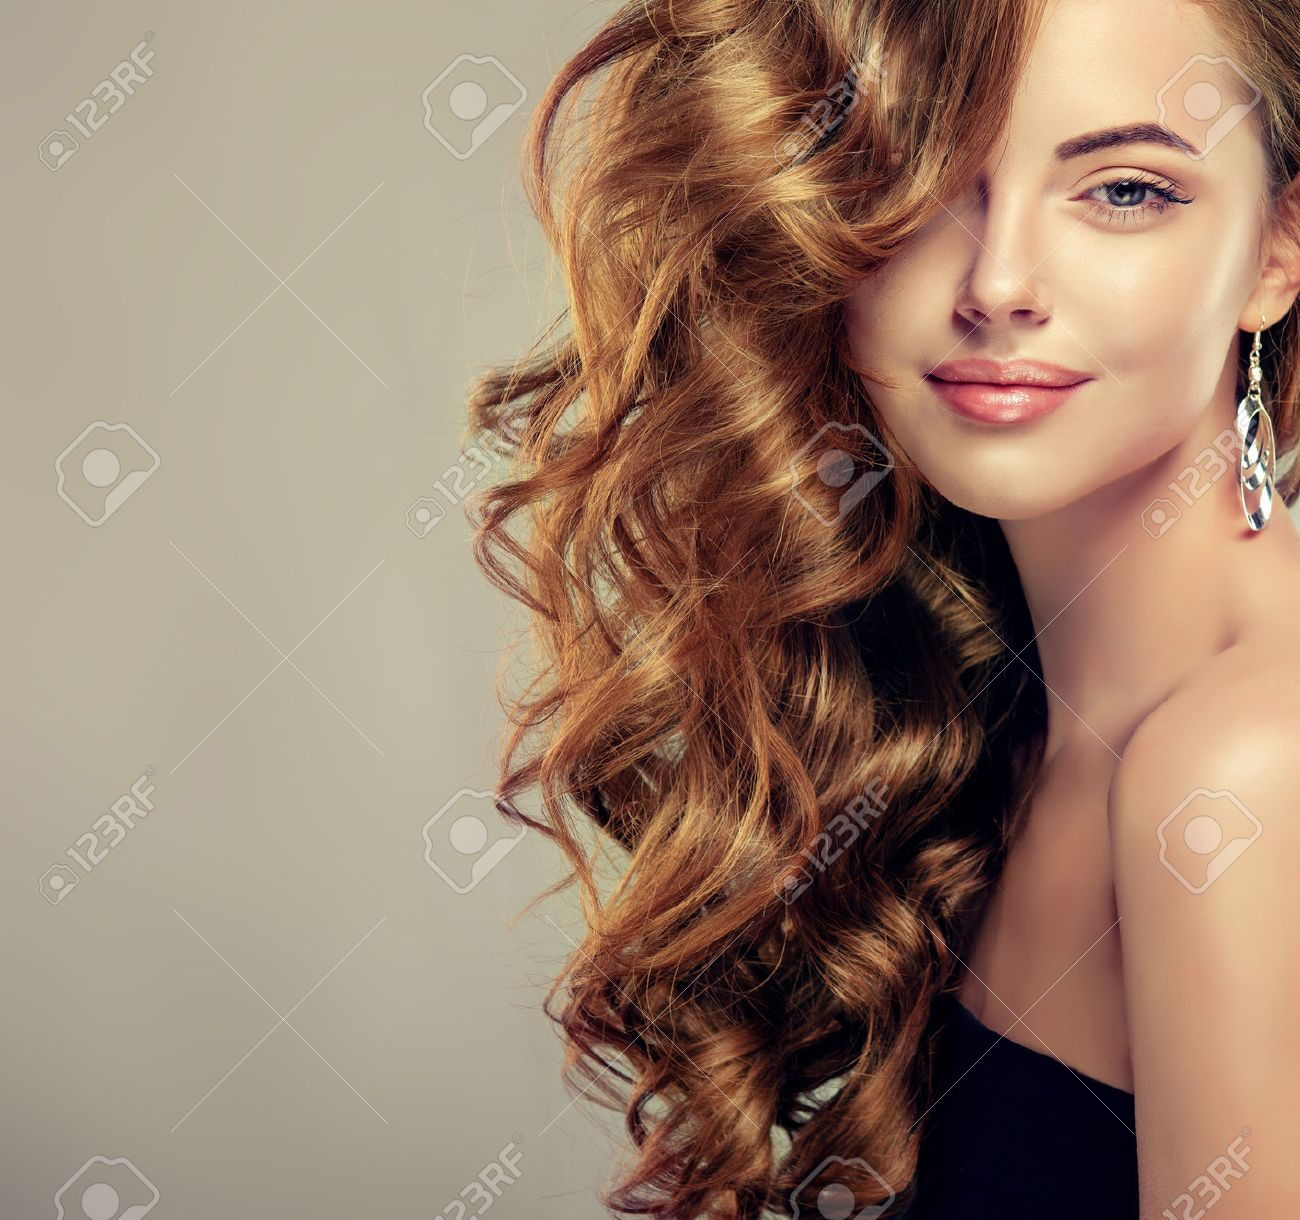 Beautiful girl with long wavy hair . Brunette model with curly hairstyle - 53032295